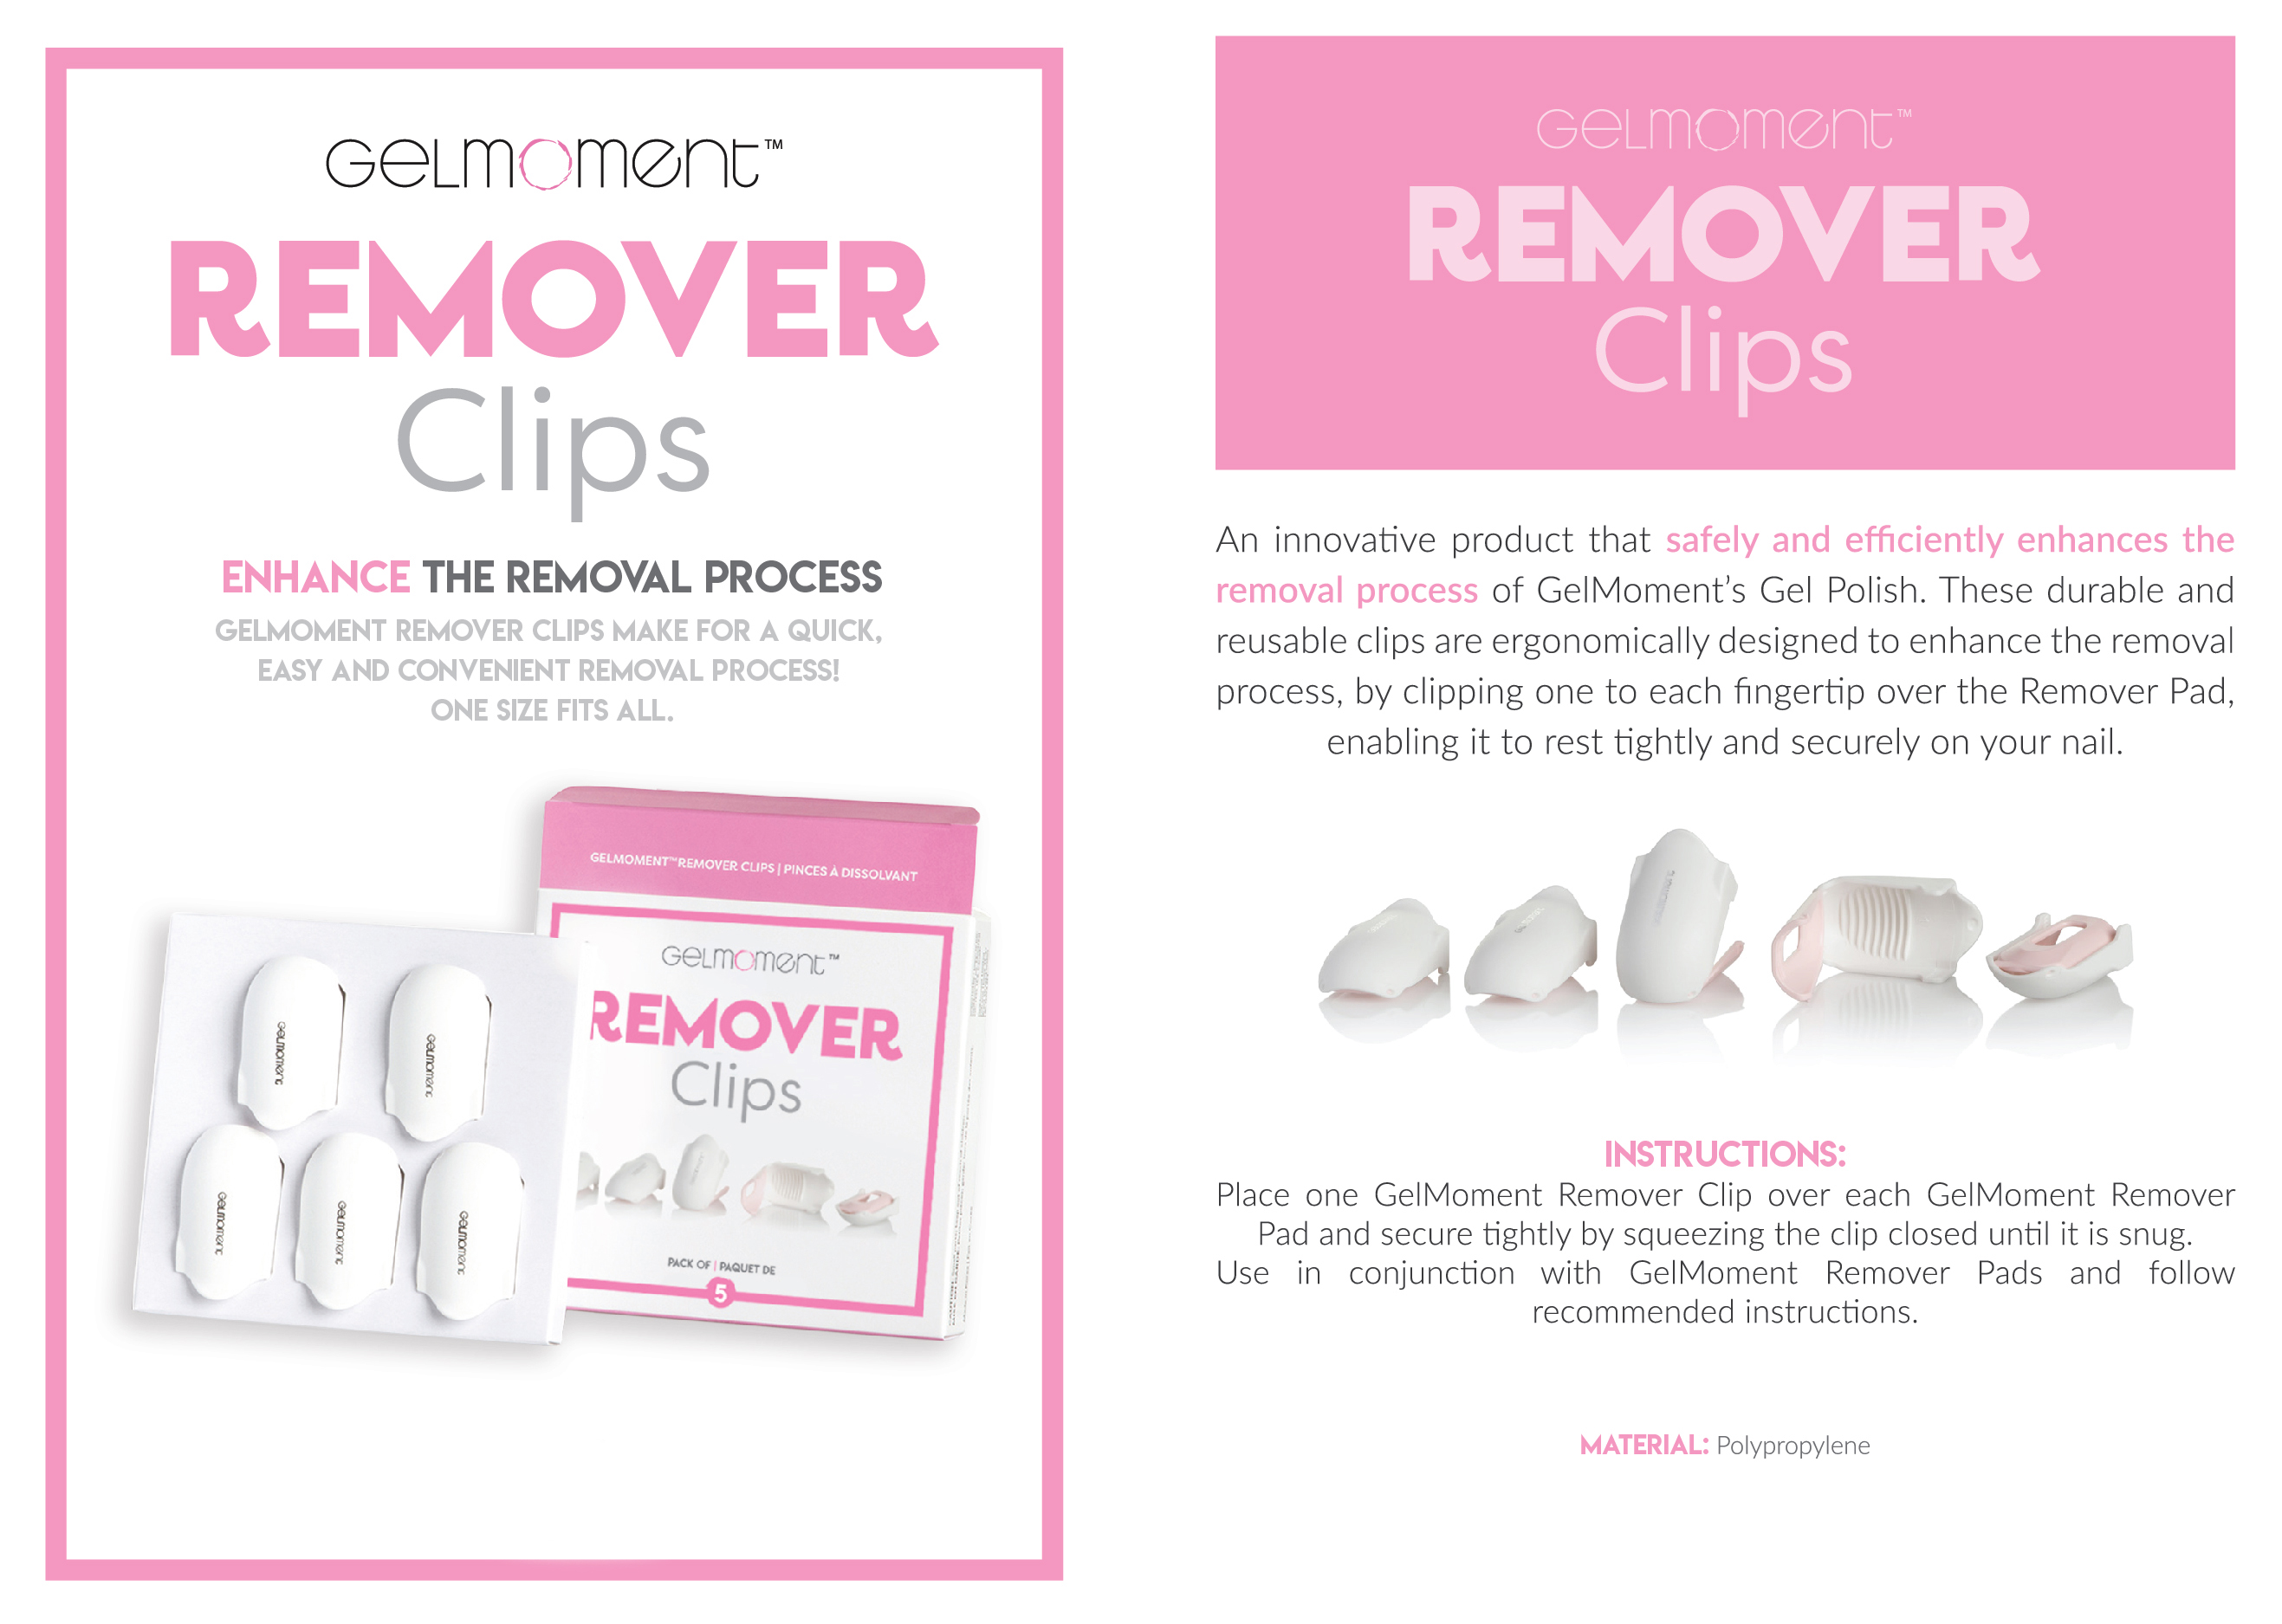 remover clips